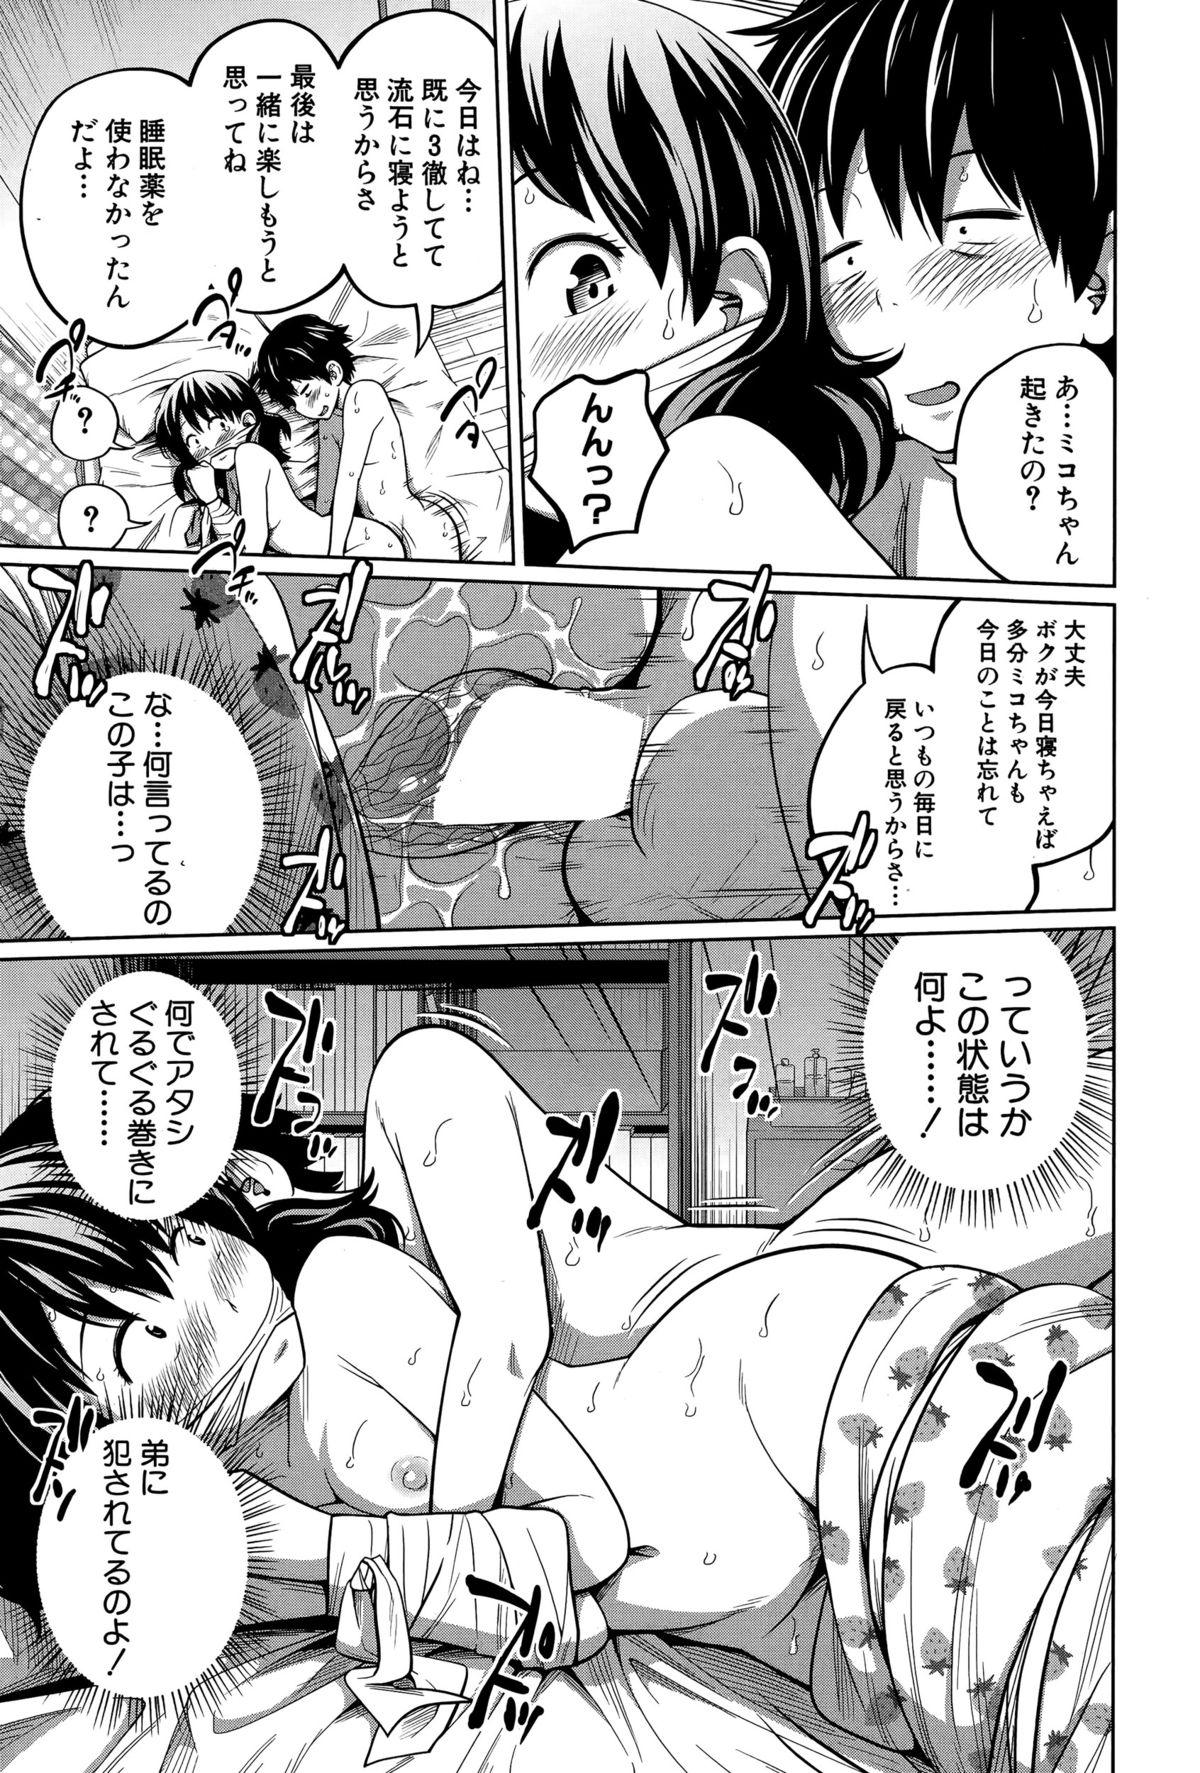 BUSTER COMIC 2015-07 58